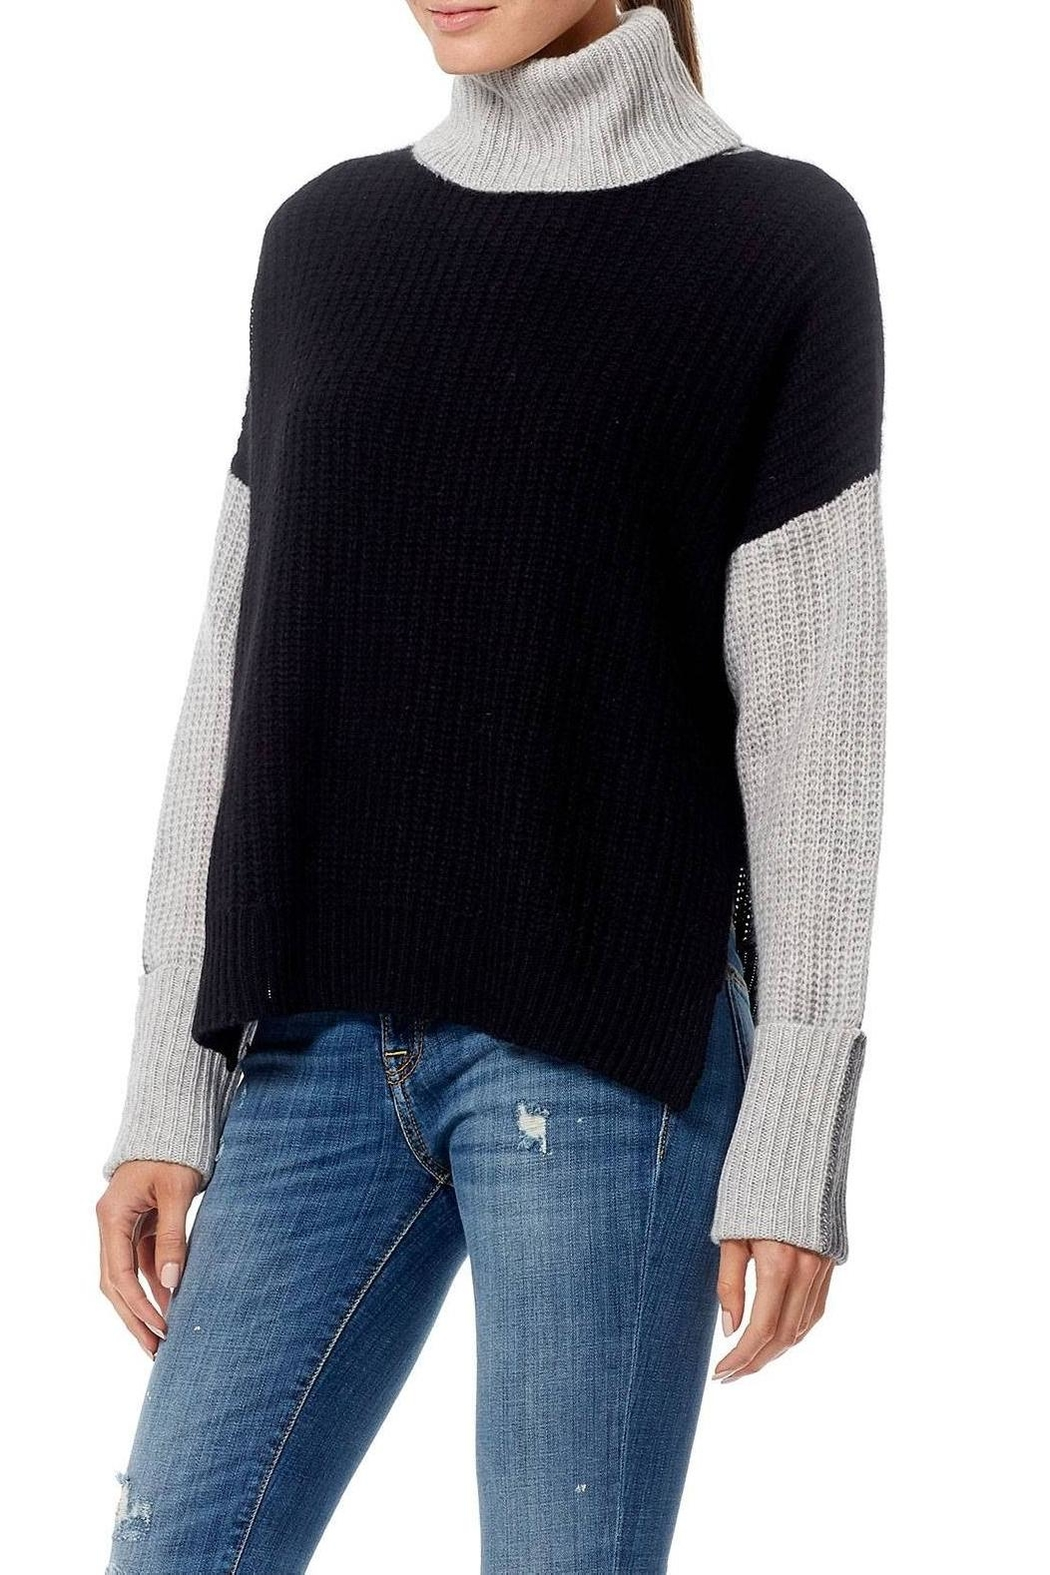 Skull Cashmere Dree Color Block Sweater - Front Full Image